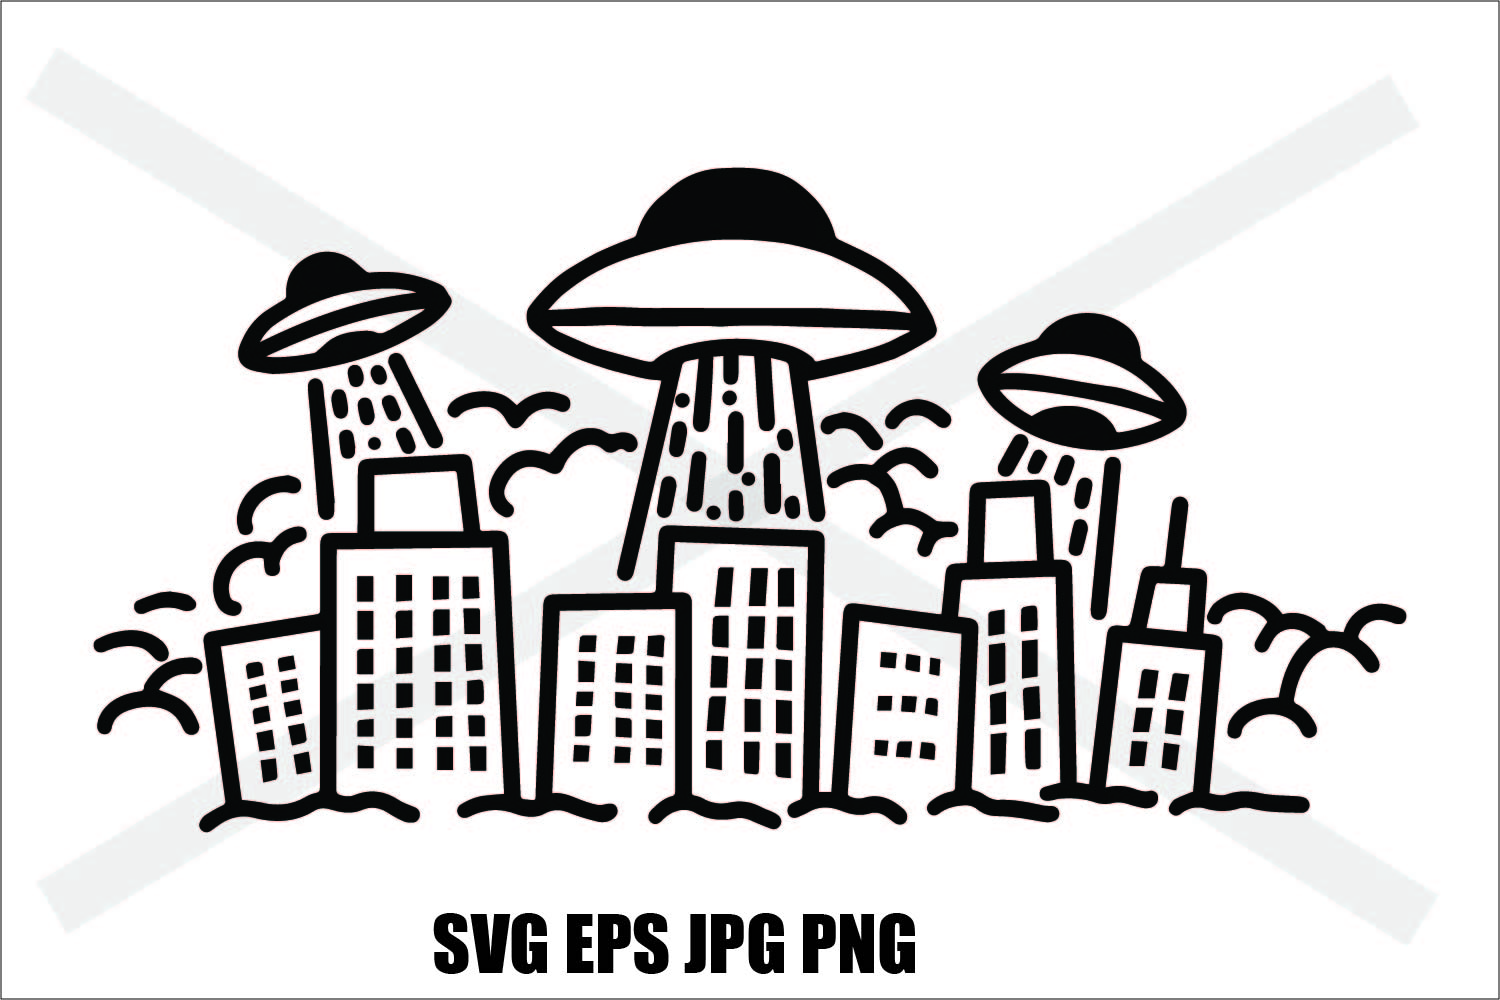 UFO Invasion - SVG EPS JPG PNG example image 2